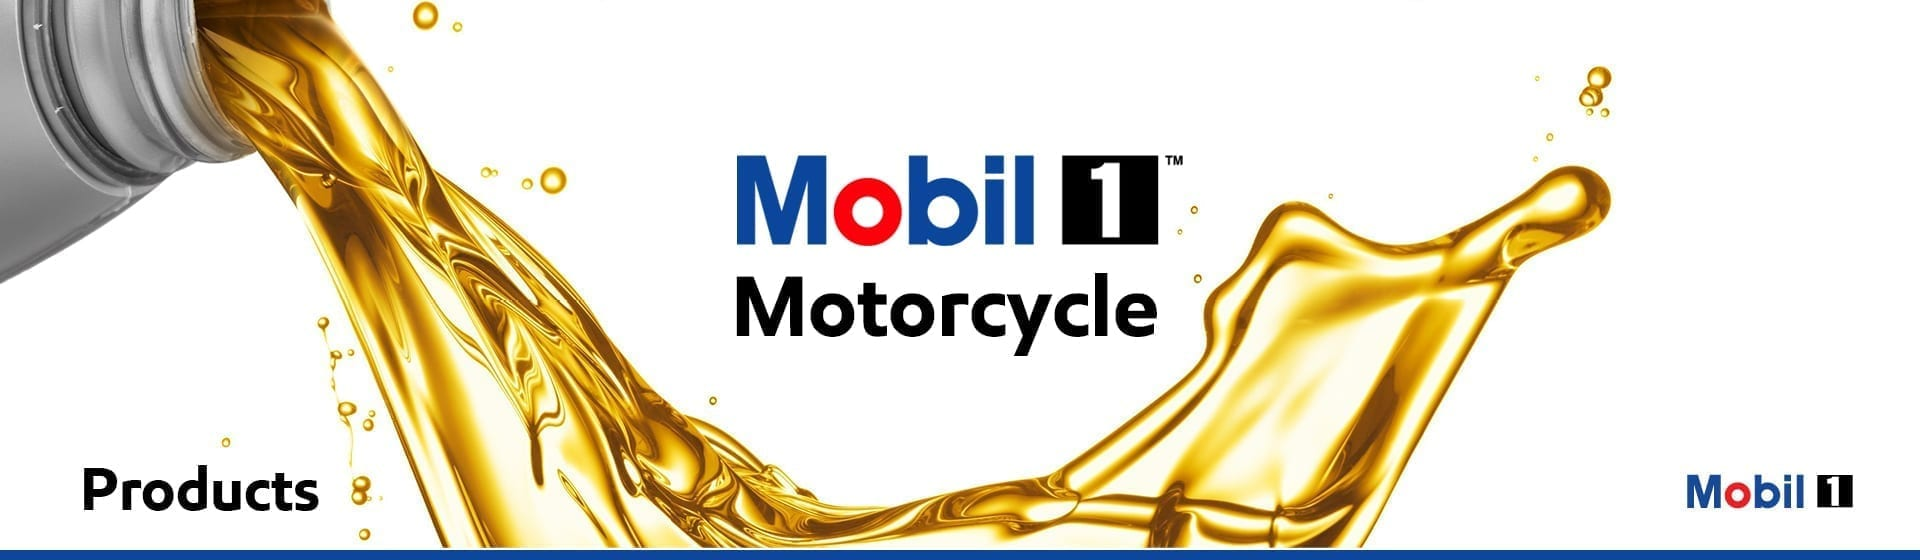 M1-Web_Heroes-Products_Mobil1Motorcycle